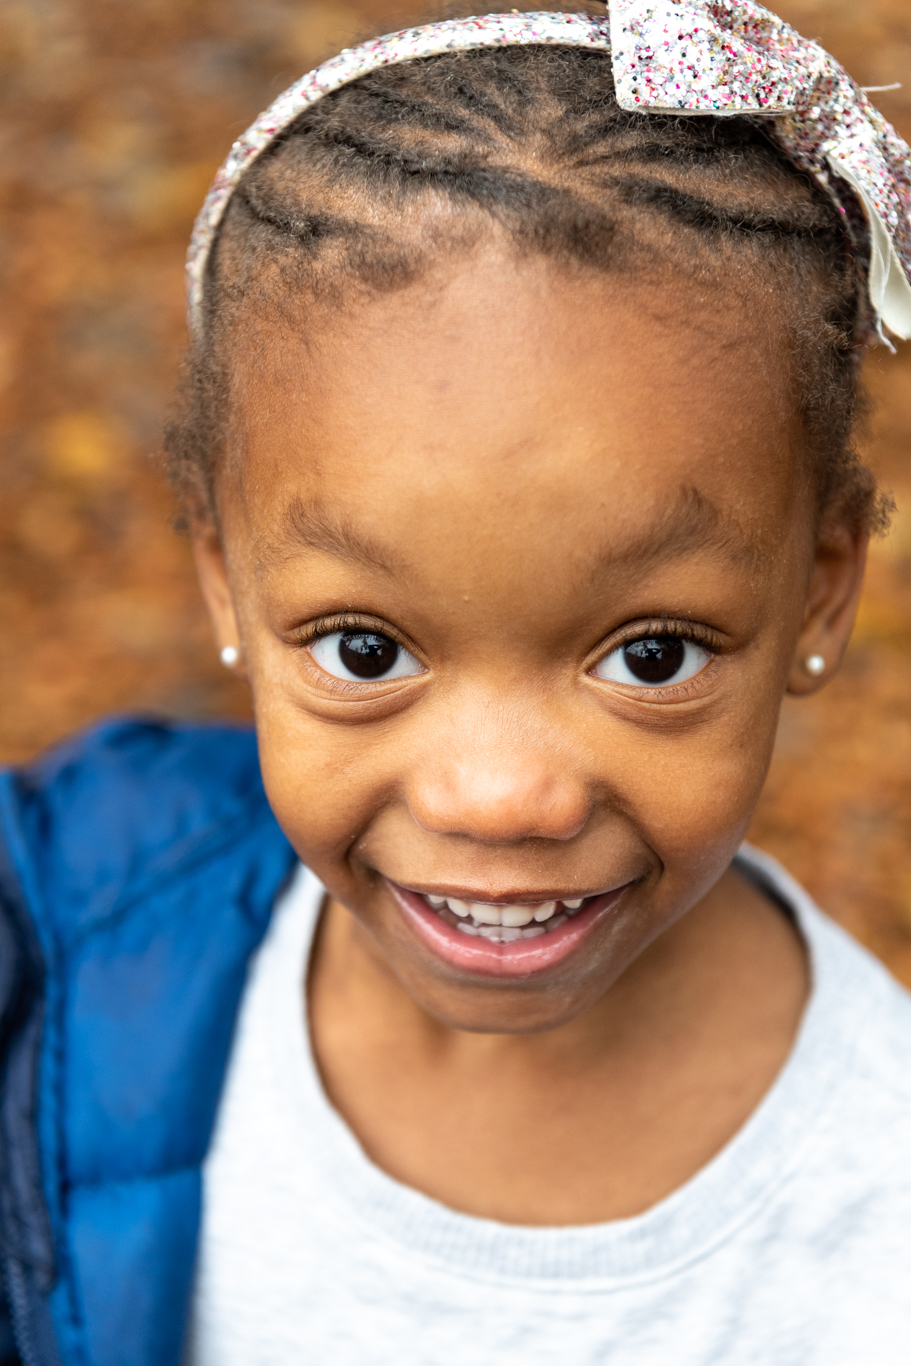 A smiling PreK student